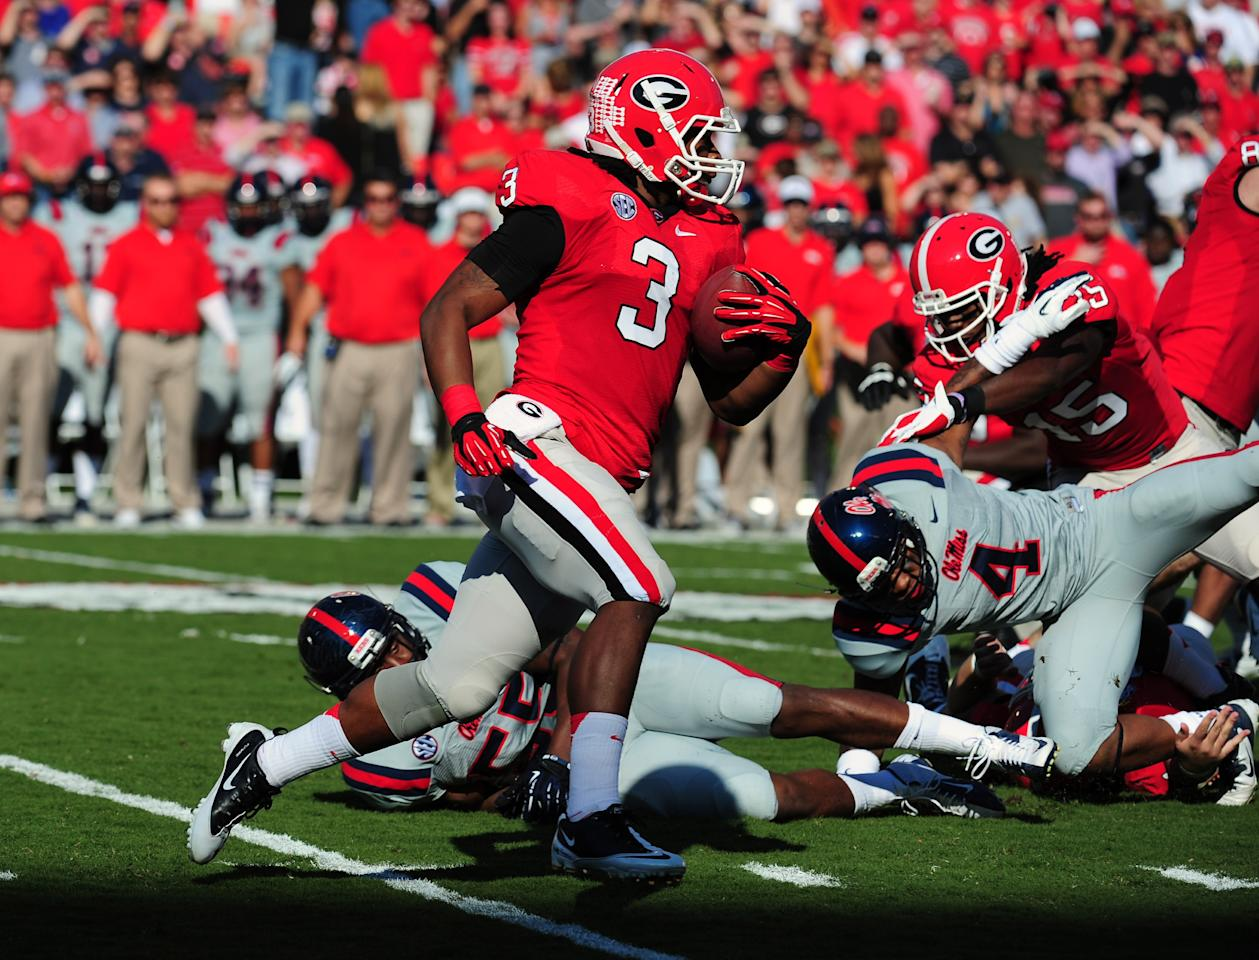 ATHENS, GA - NOVEMBER 3: Todd Gurley #3 of the Georgia Bulldogs carries the ball against the Ole Miss Rebels at Sanford Stadium on November 3, 2012 in Athens, Georgia. (Photo by Scott Cunningham/Getty Images)